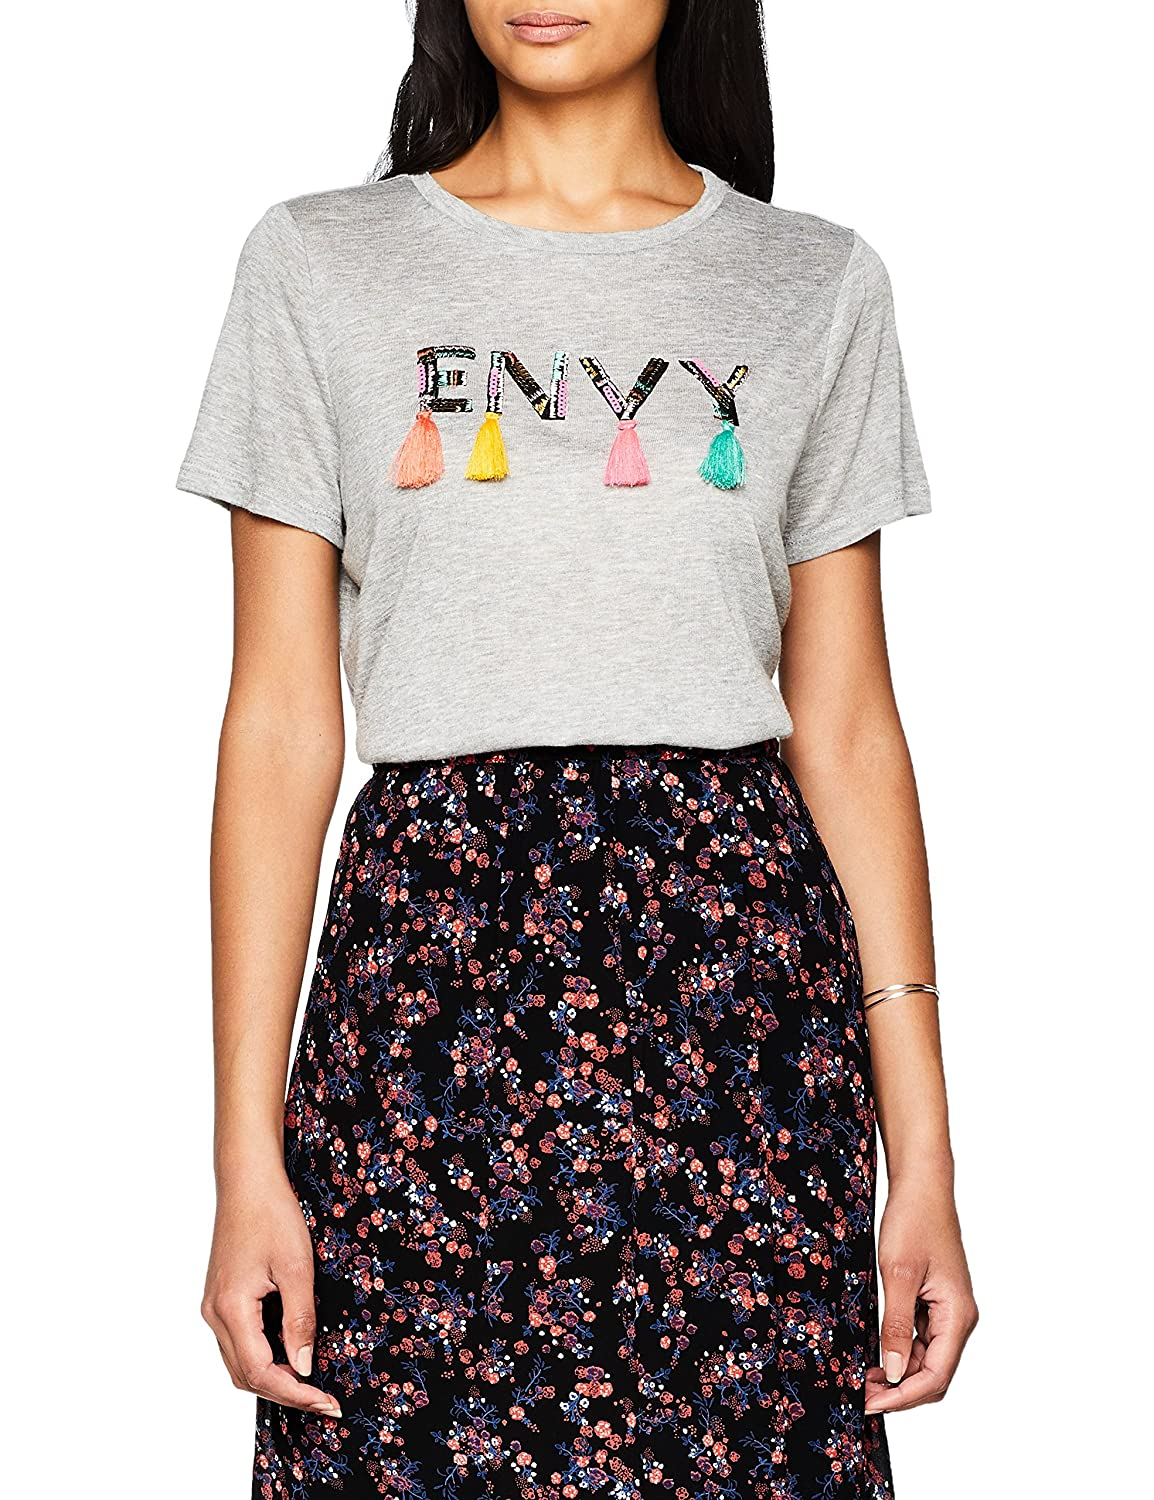 Only Onlpami S/S Tassel Print Top Box Jrs, Camiseta para Mujer